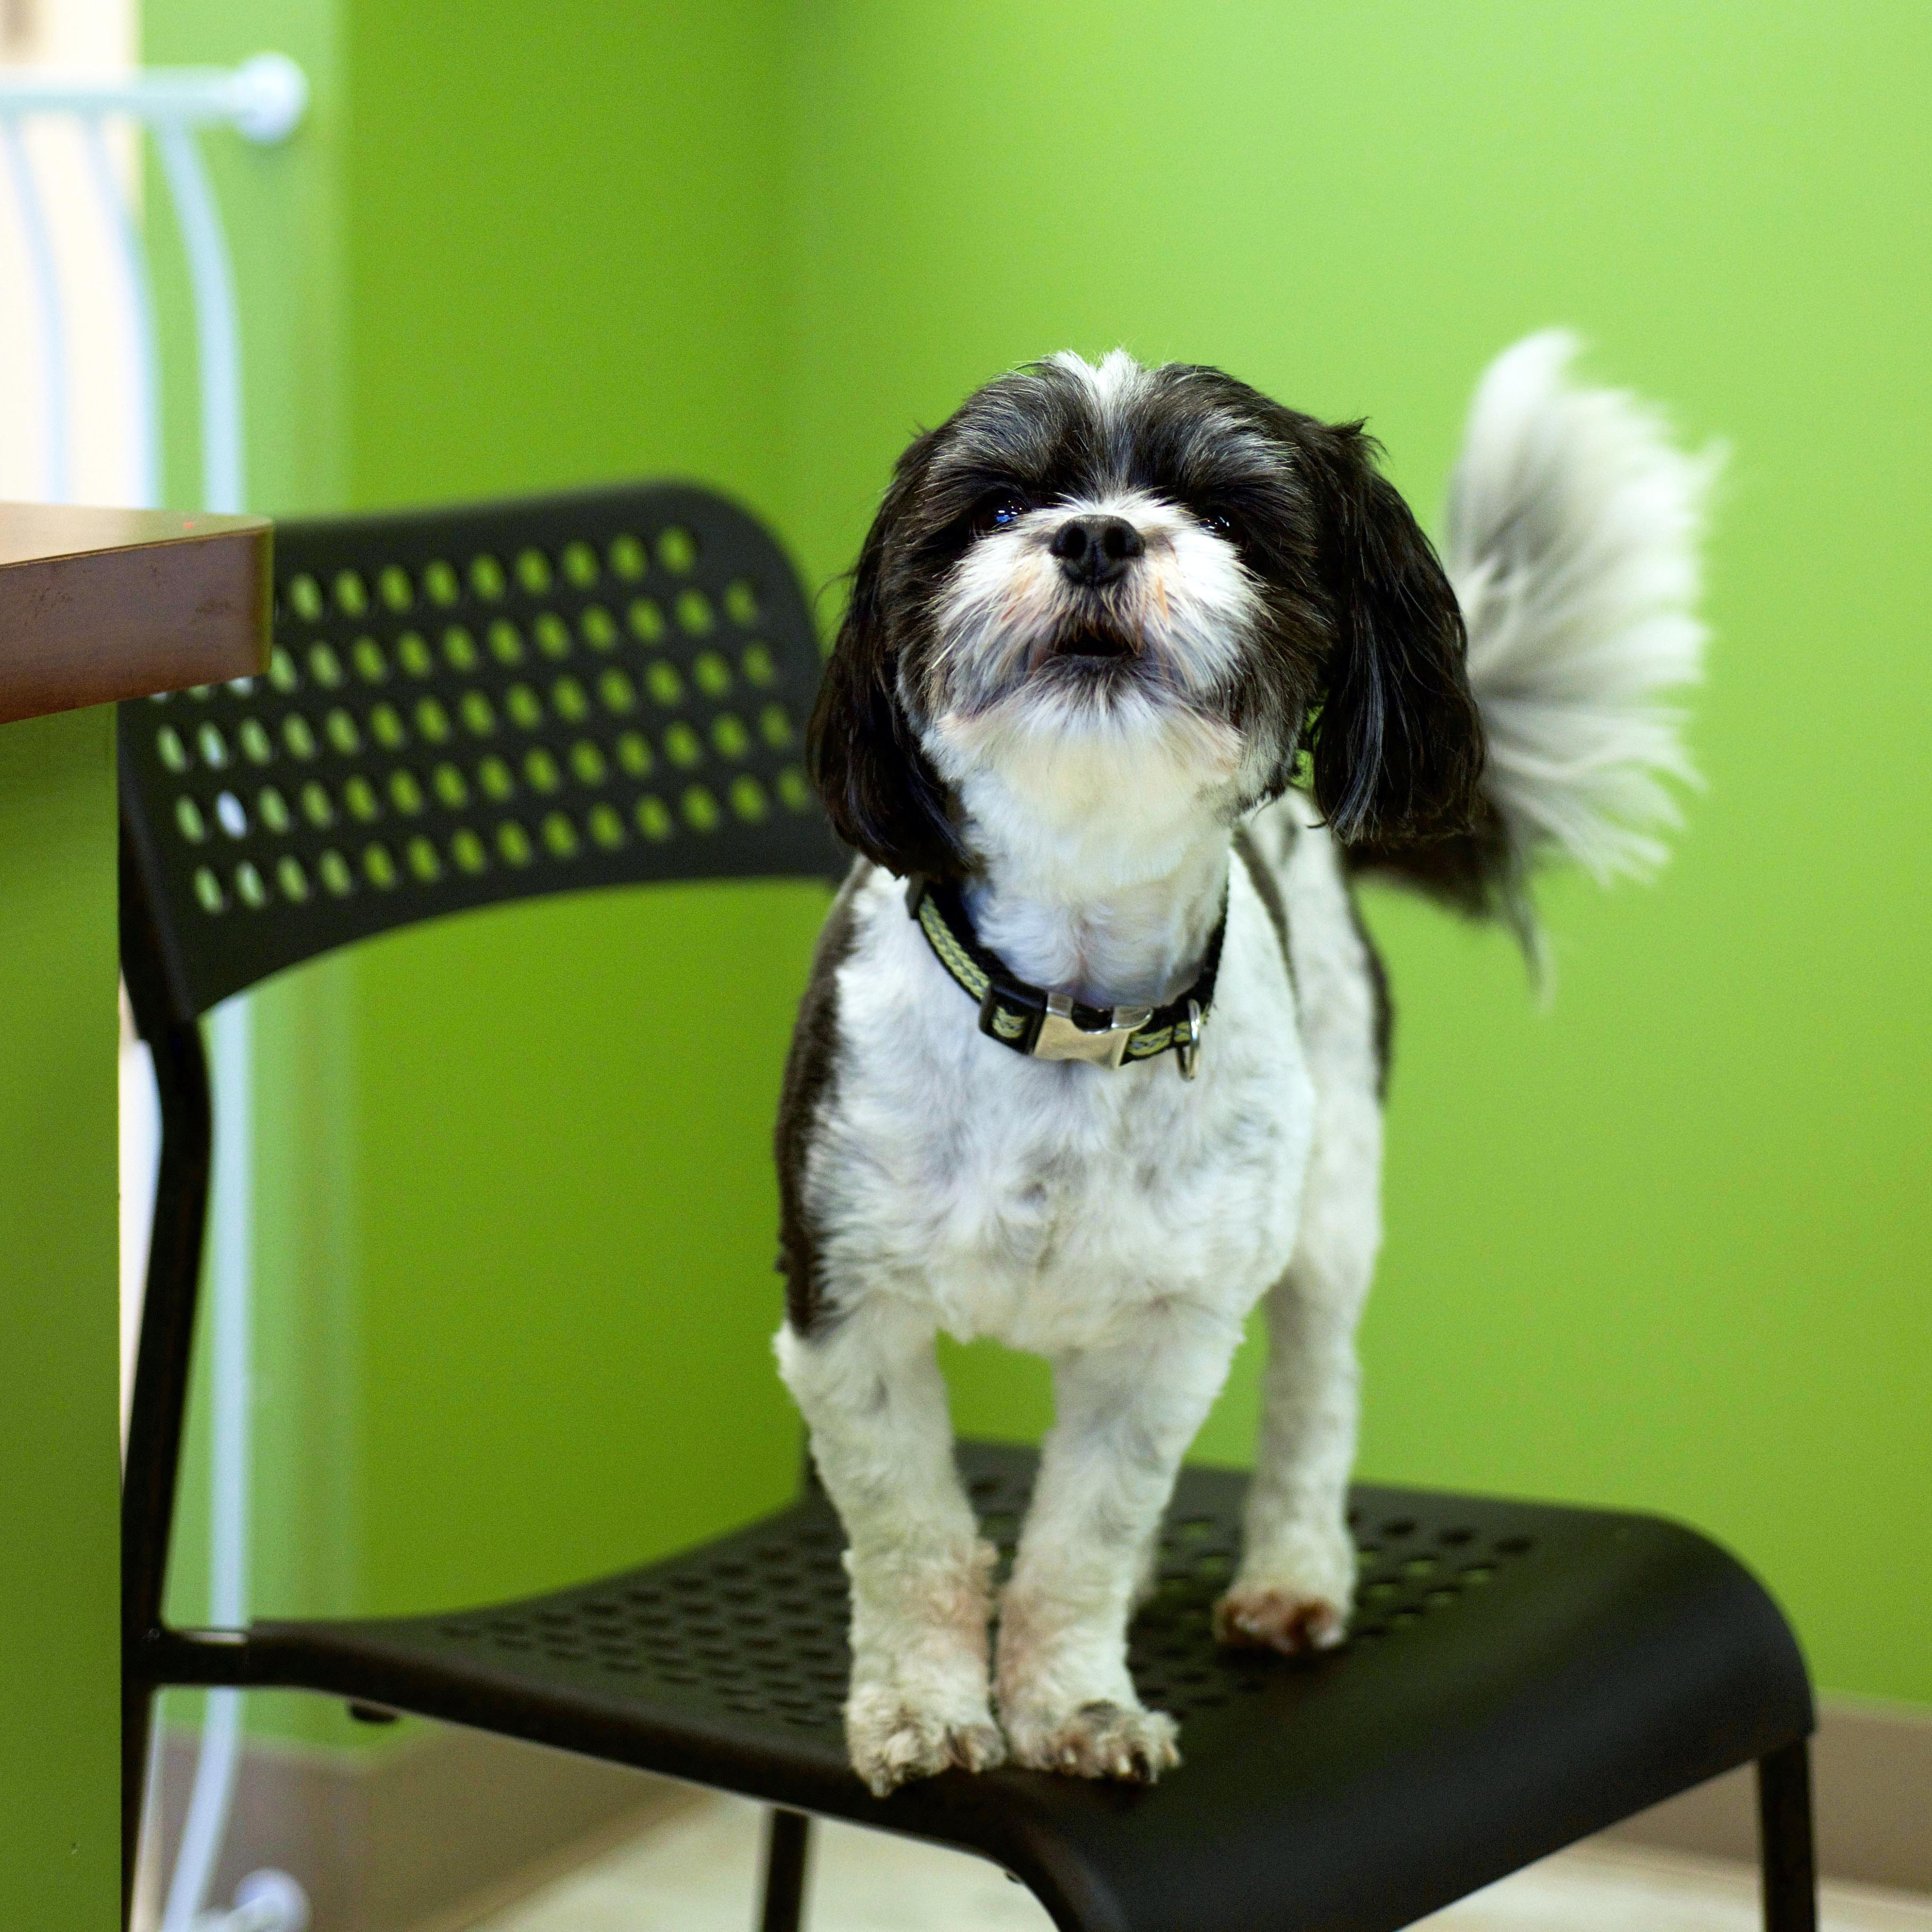 Petman dog groomingstaffordfredericksburgspotsylvaniafalmouth visits to petman grooming should be enjoyable for your beloved pet we take extra special care of your little ones providing them with comfortable resting solutioingenieria Images